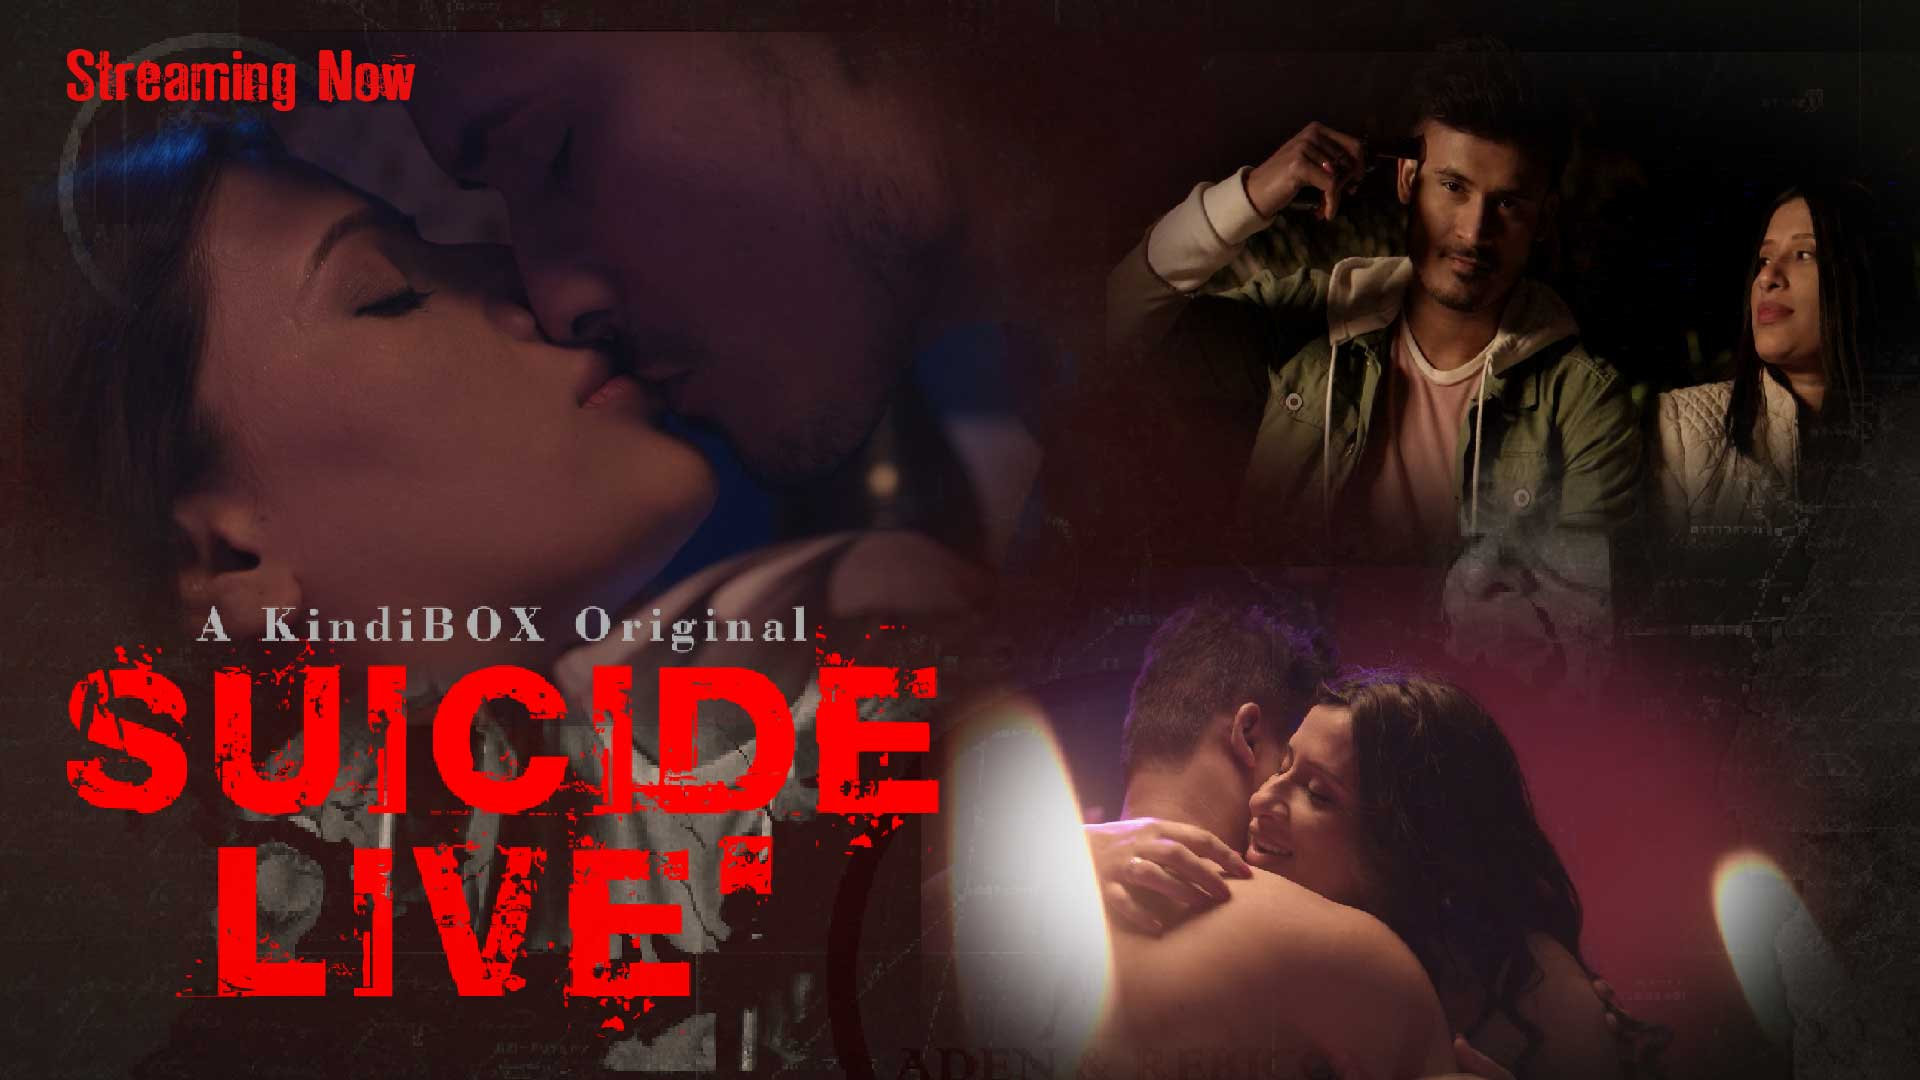 Suicide Live 2020 S01EP01 Hindi KindiBOX Original Web Series 720p HDRip 164MB Download